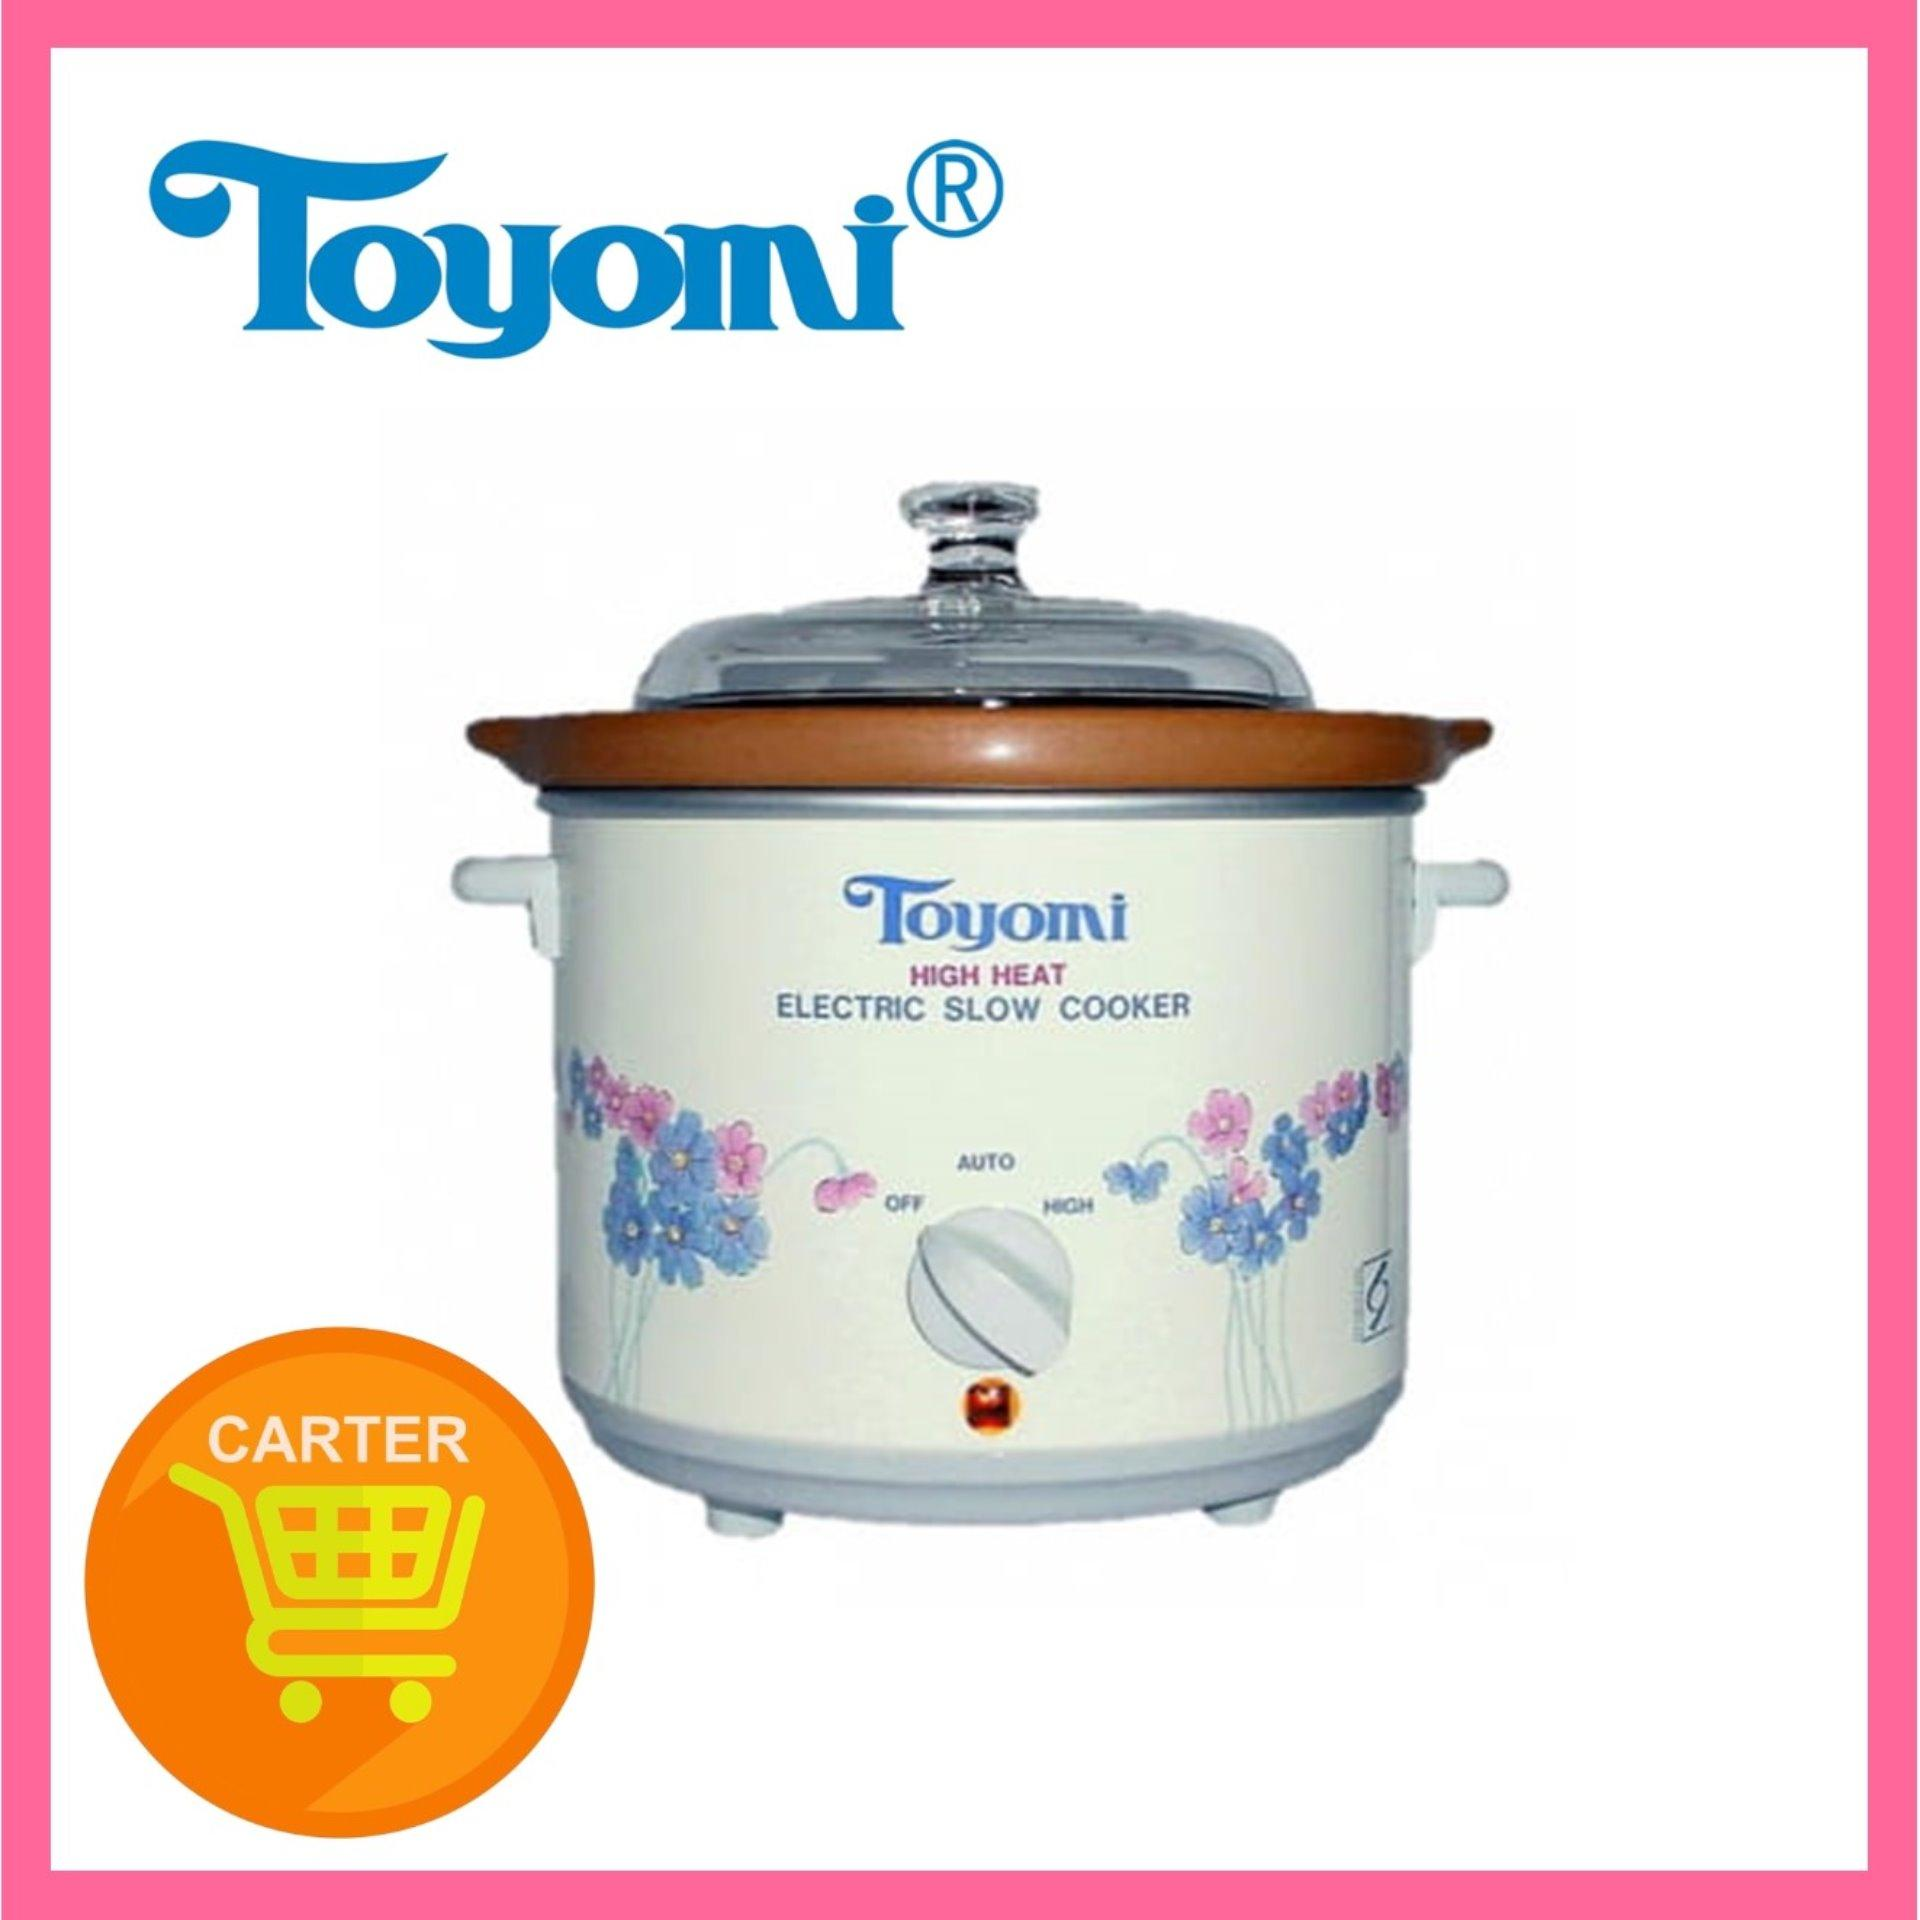 Toyomi Slow Cooker with Ceramic Pot HH1500 1.2L